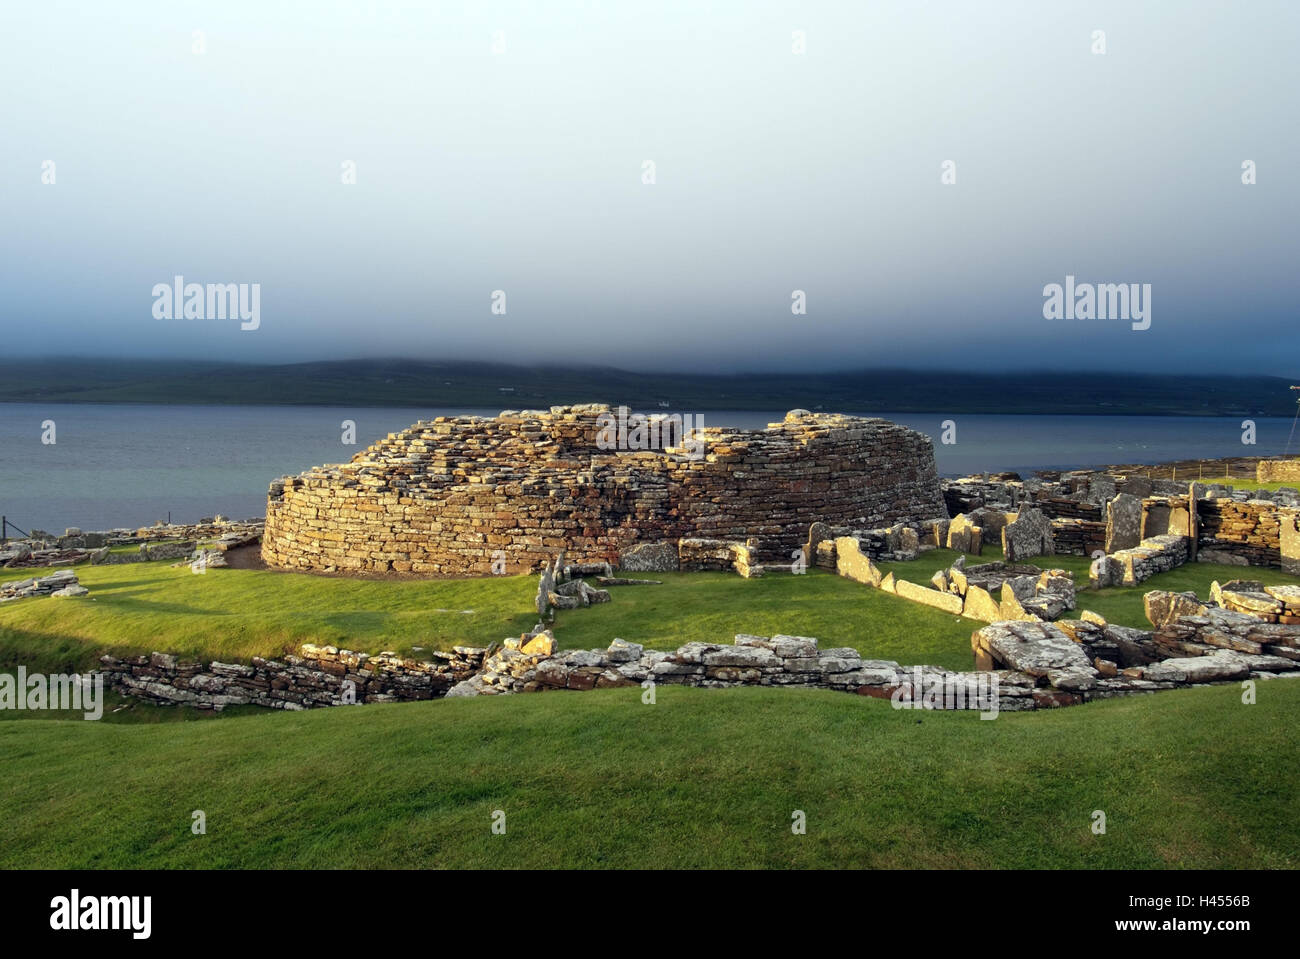 Great Britain, Scotland, Orkneyinseln, island Main country, Broch Gurness, stone circle, ruin, prehistorically, - Stock Image